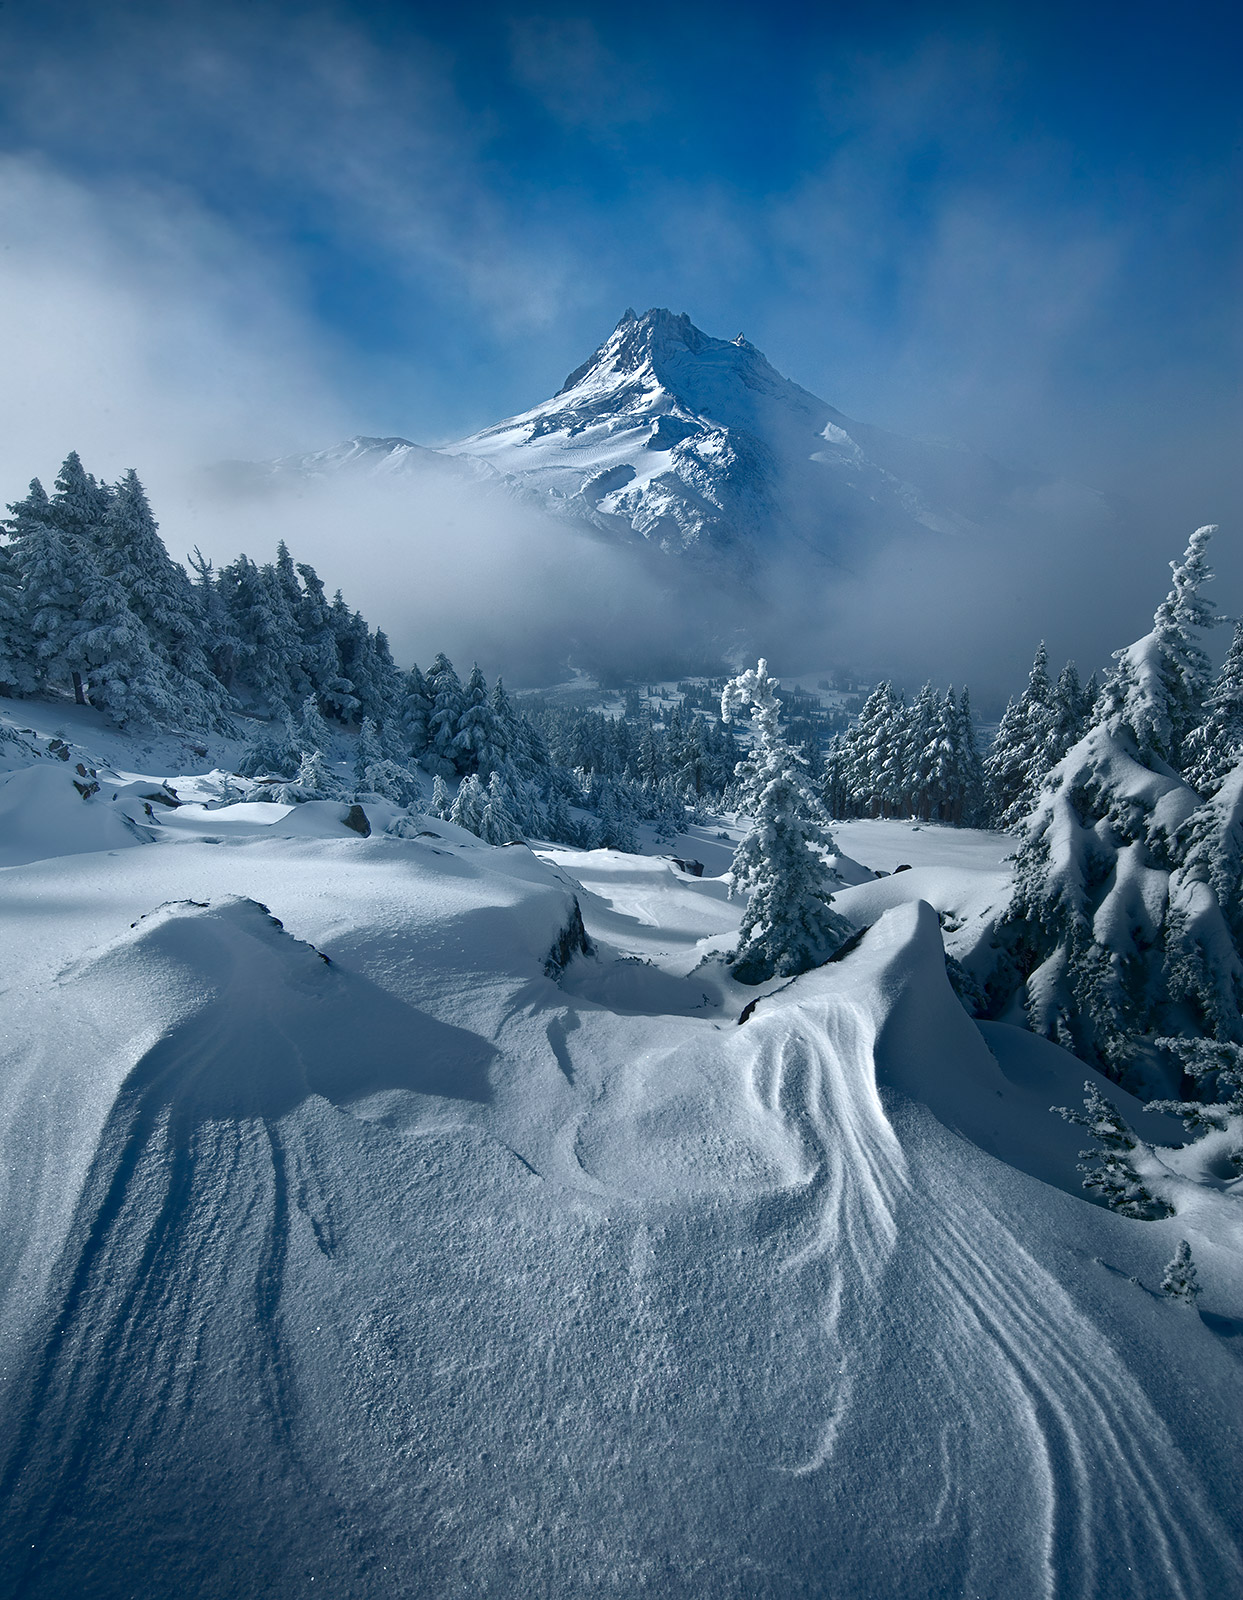 mount jefferson, clouds, morning, snowfall, alpine, photo